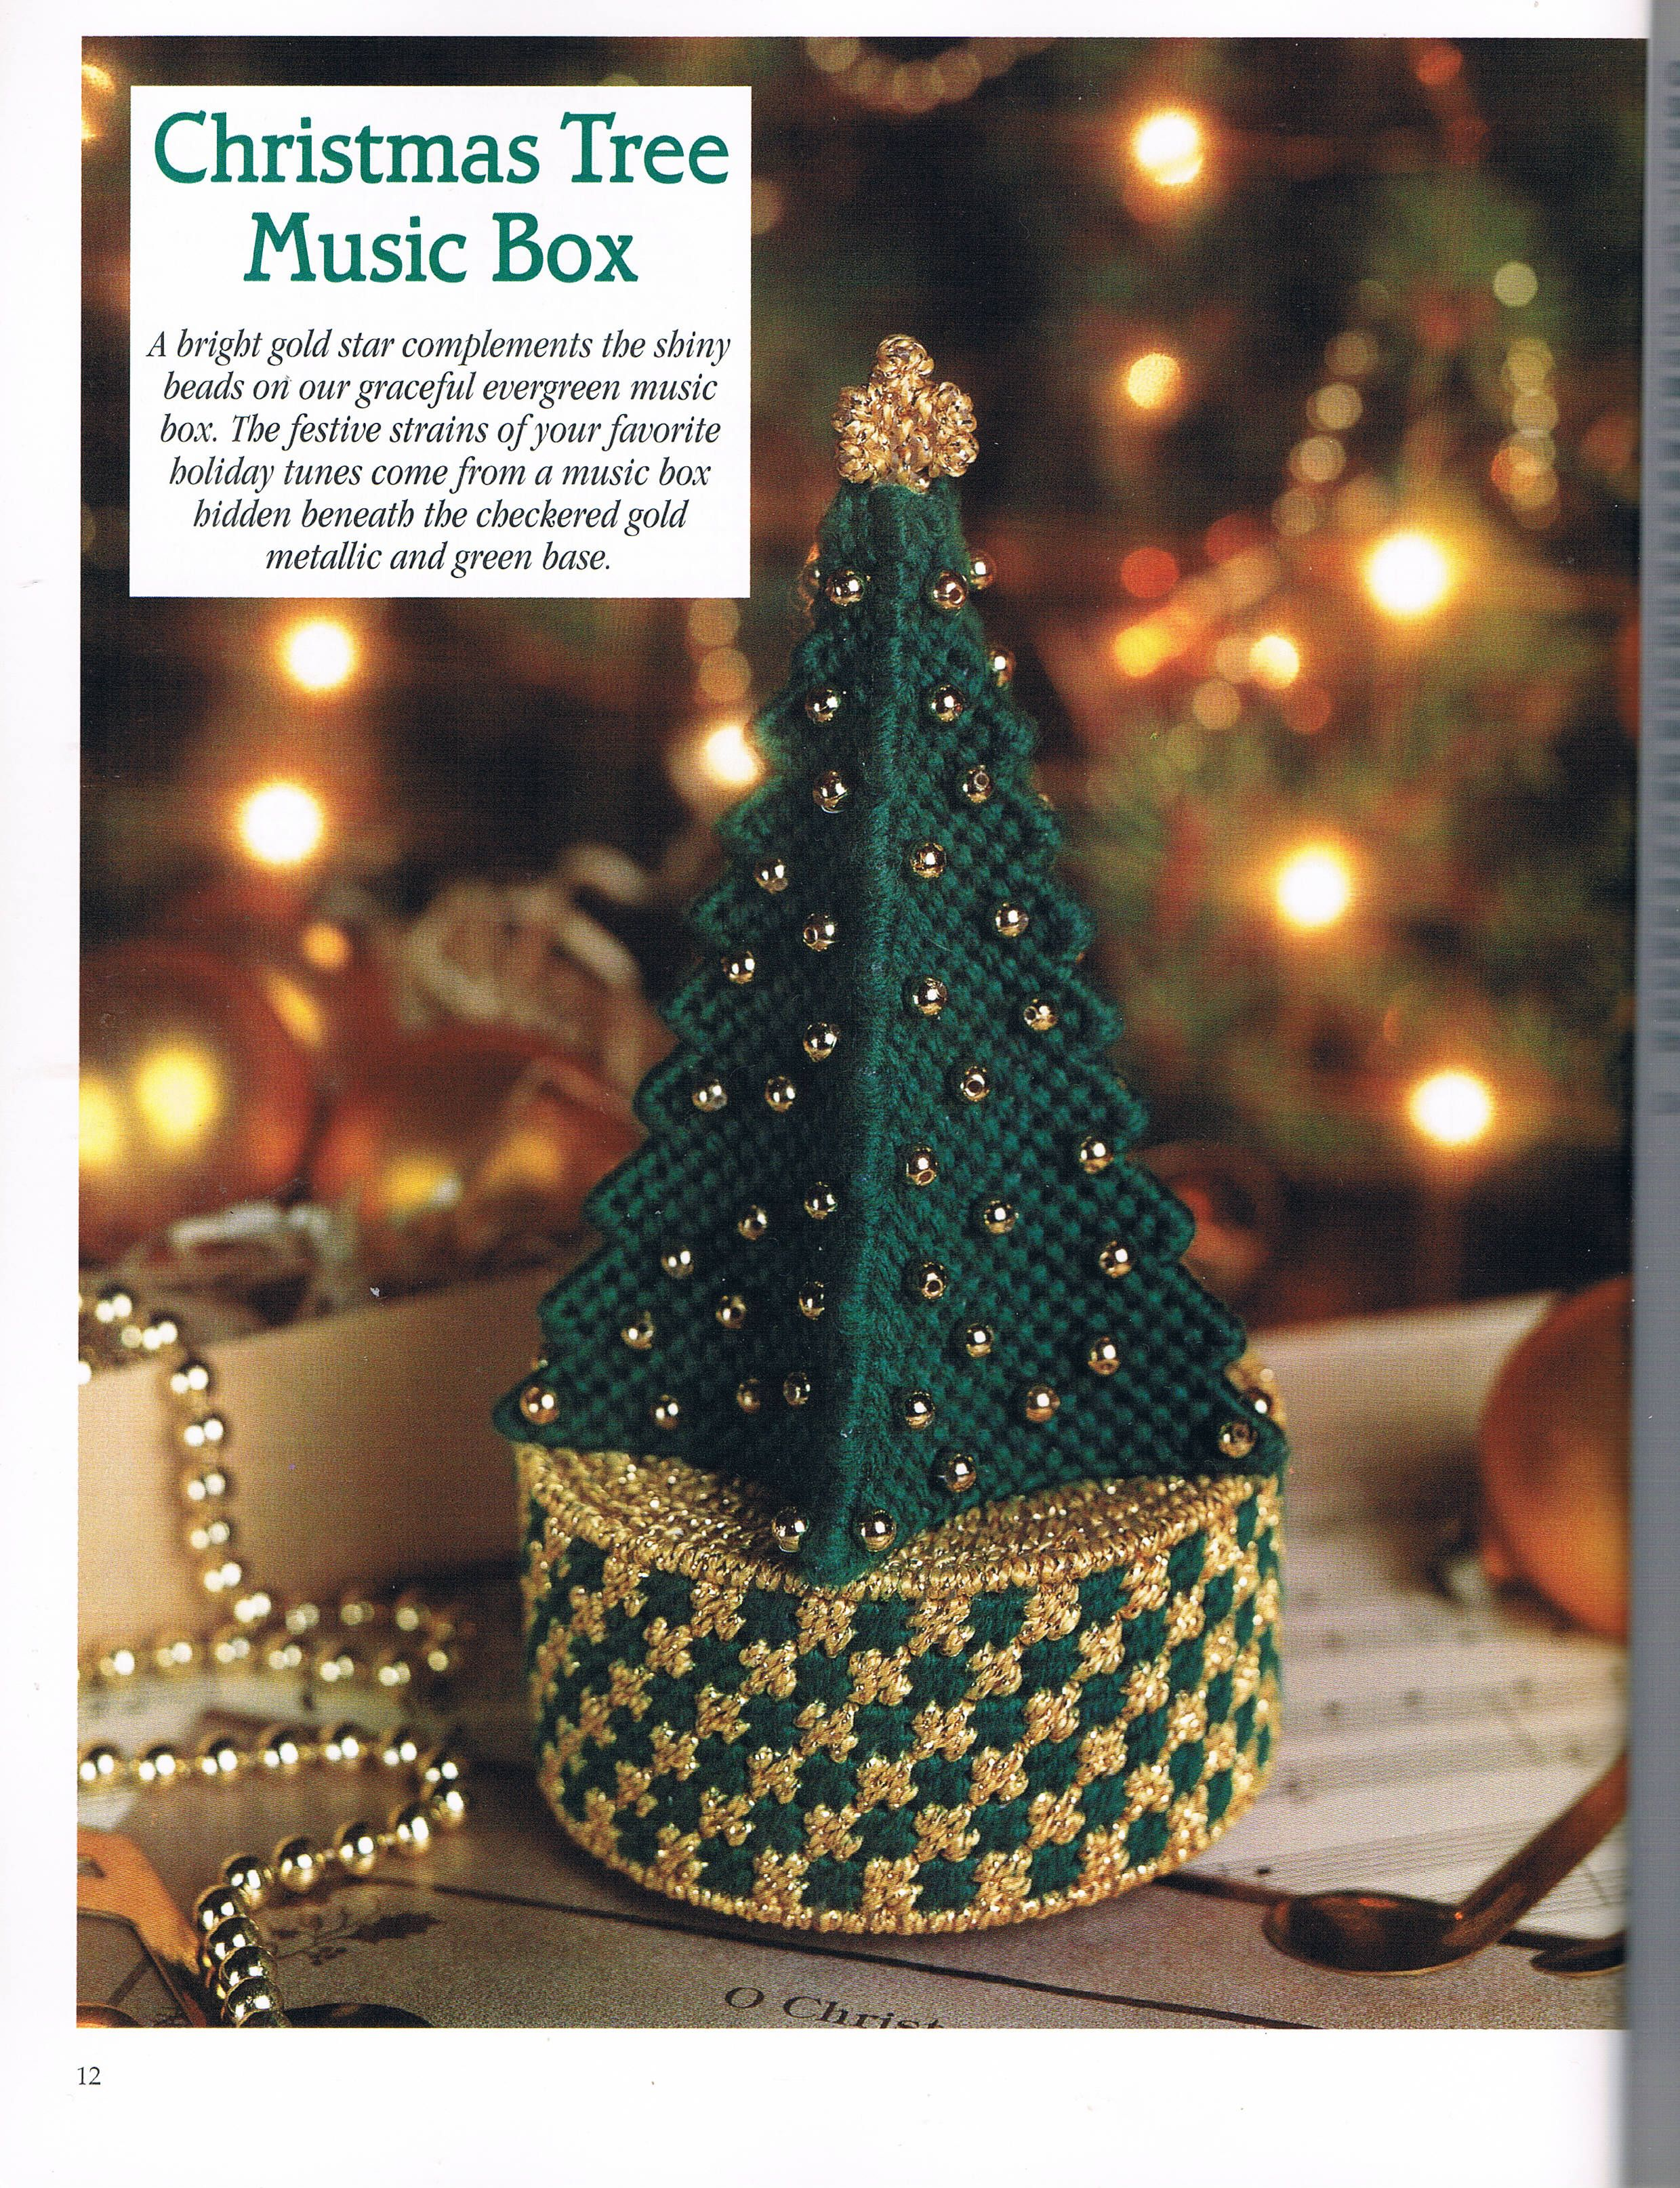 Christmas Tree Music Box By Mary Perry 1 2 From A Festive Christmas In Plastic Canvas Boo Plastic Canvas Christmas Plastic Canvas Crafts Plastic Canvas Books